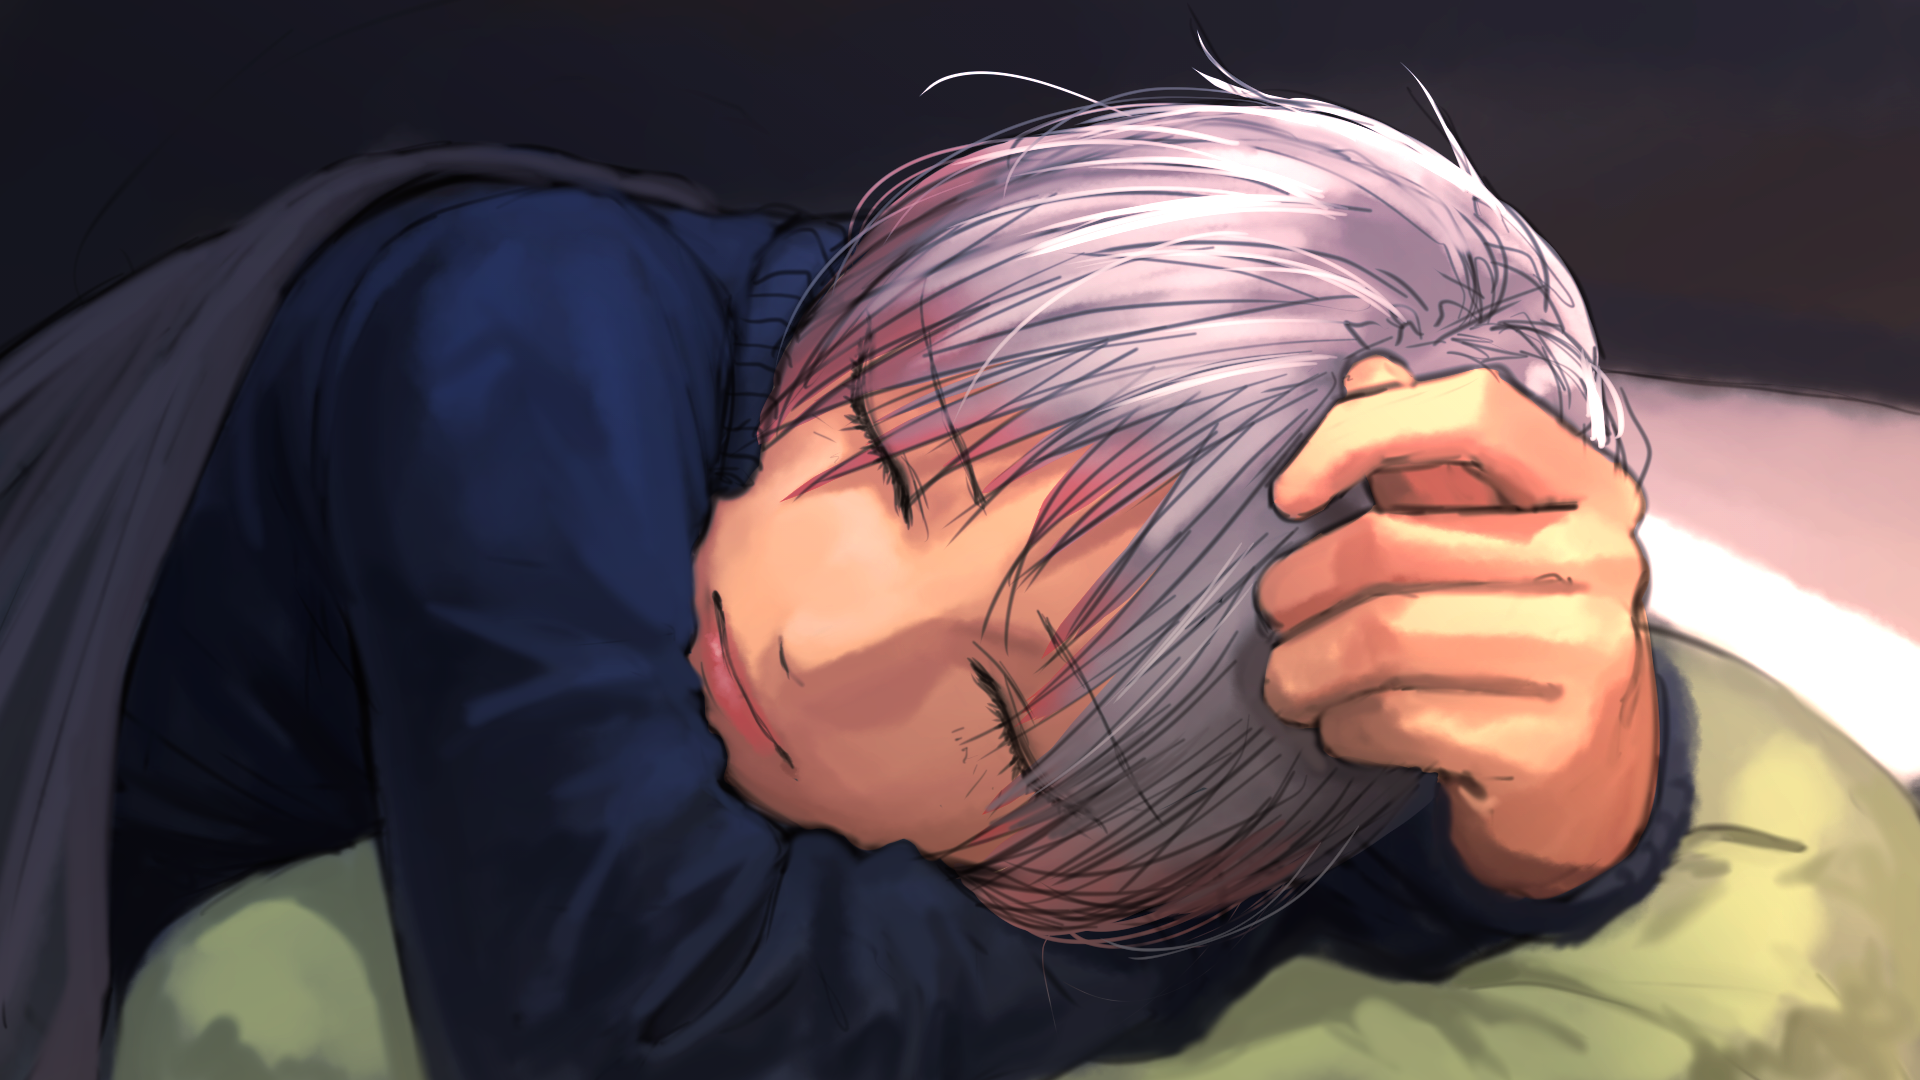 Sleeping Anime Wallpapers Top Free Sleeping Anime Backgrounds Wallpaperaccess